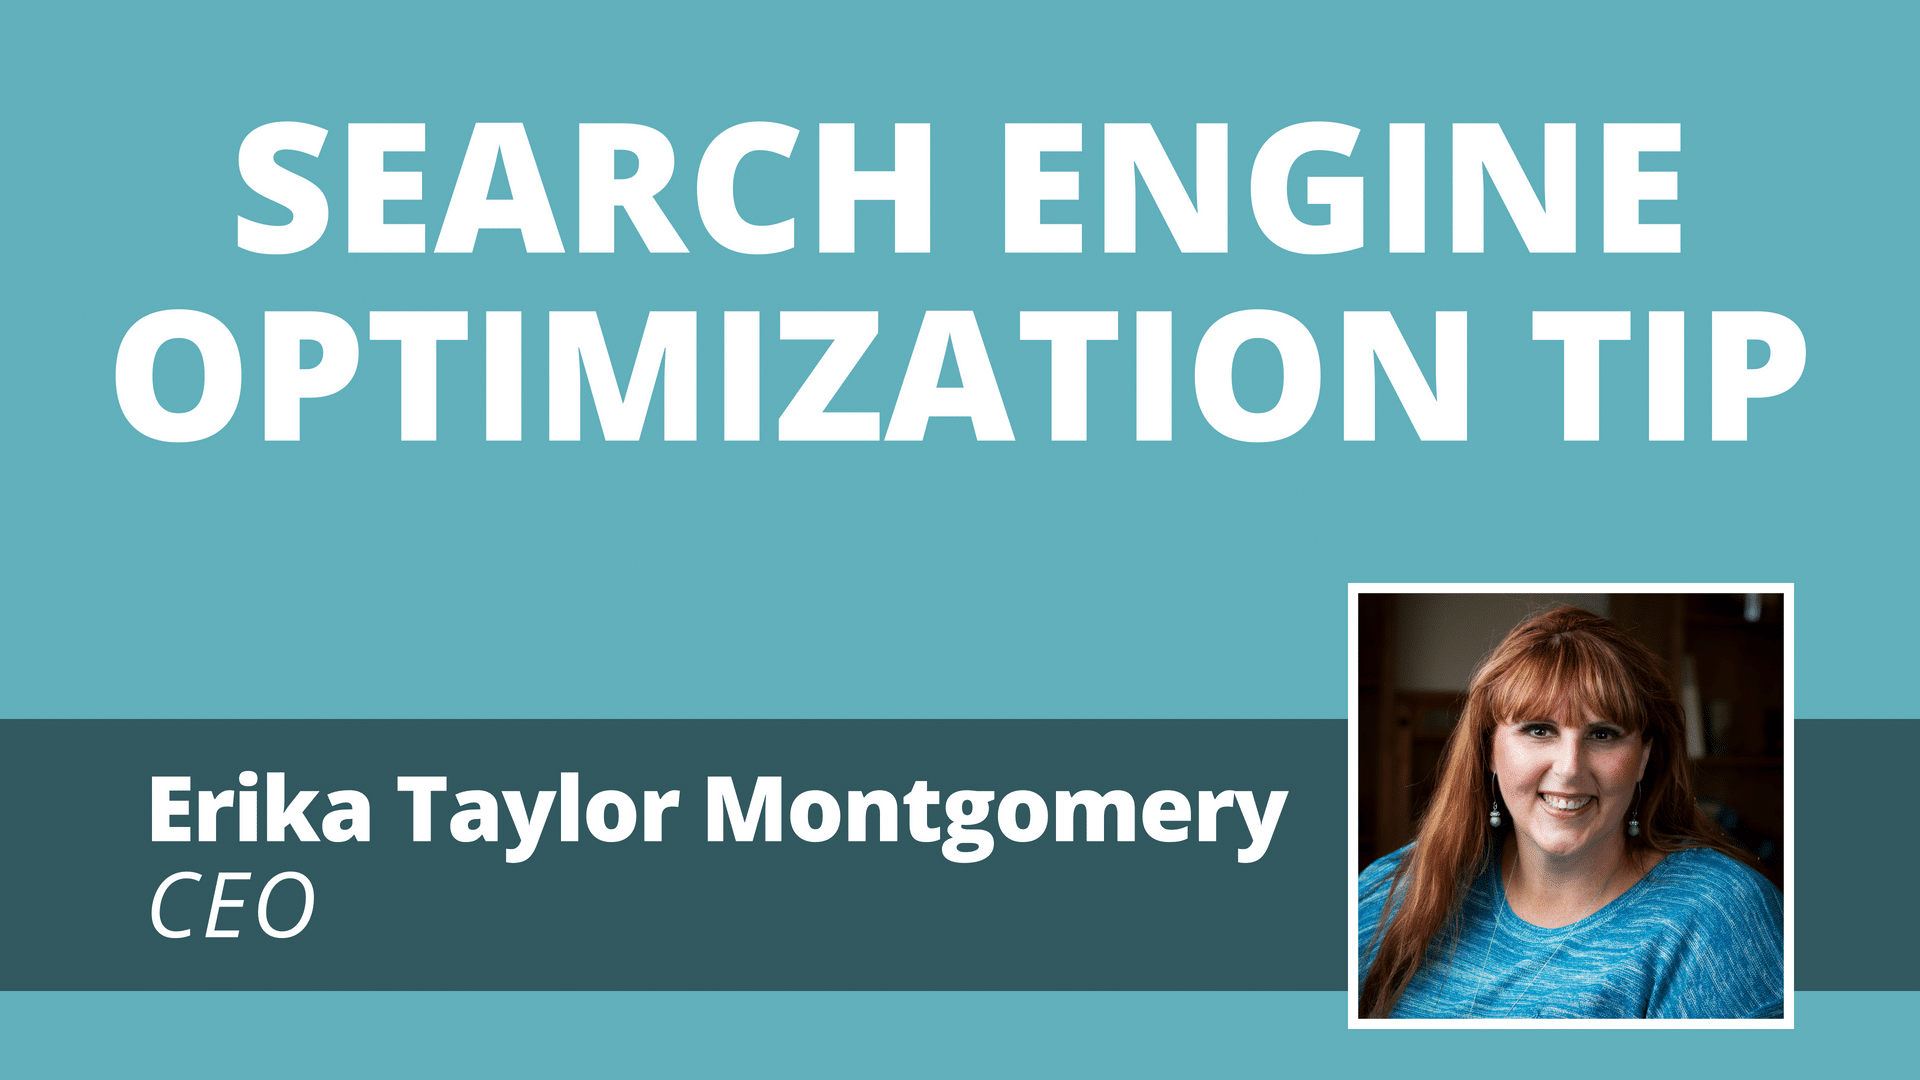 Video: Search Engine Optimization Tip